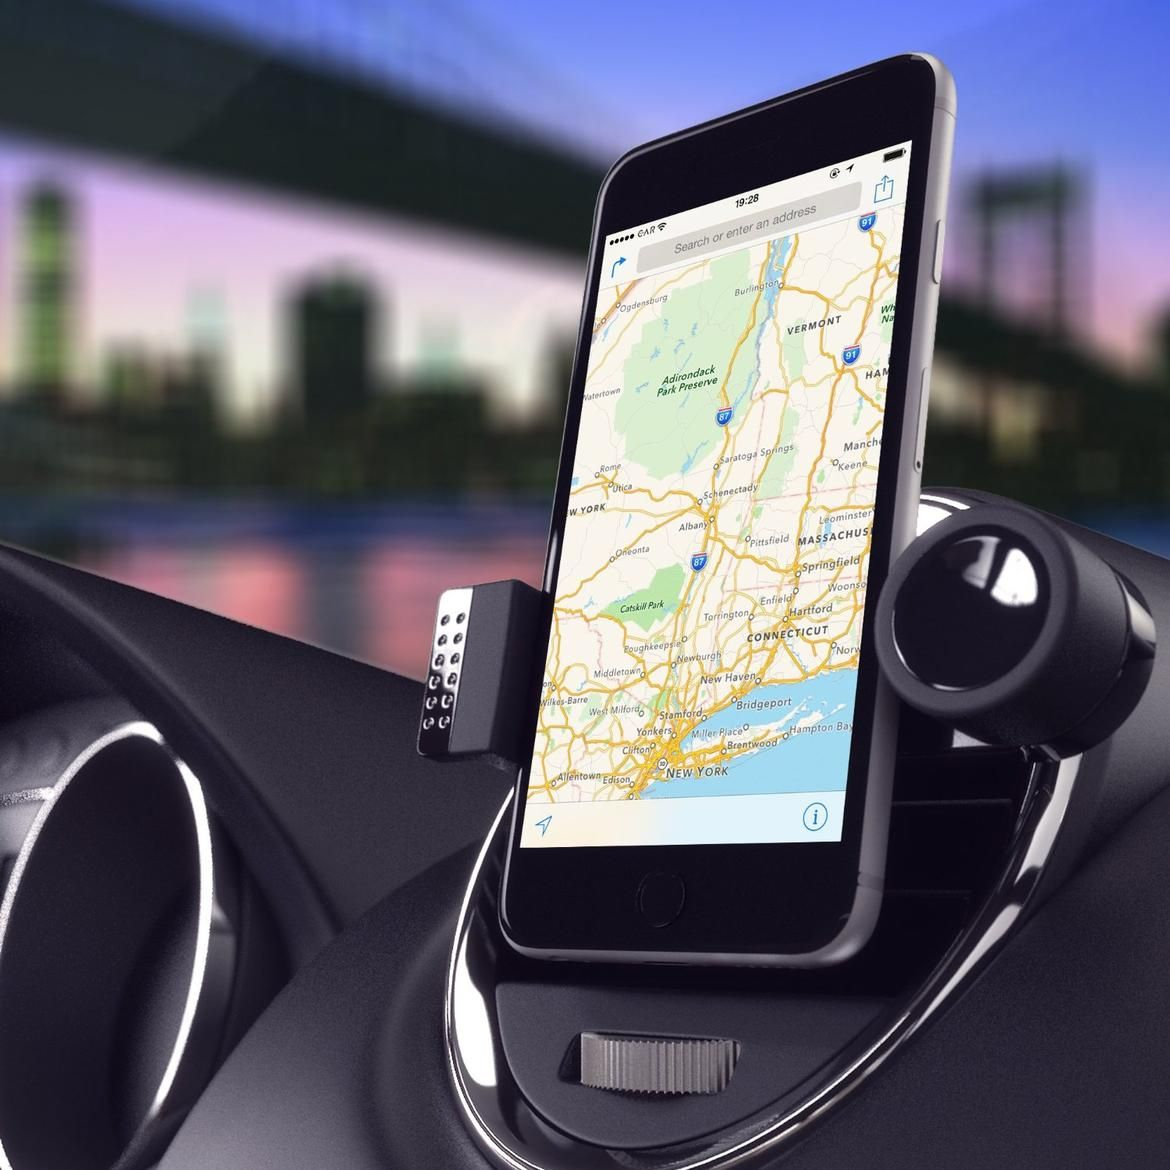 Best iPhone car accessories (2017 edition) - Page 7   Top car, Cars ...